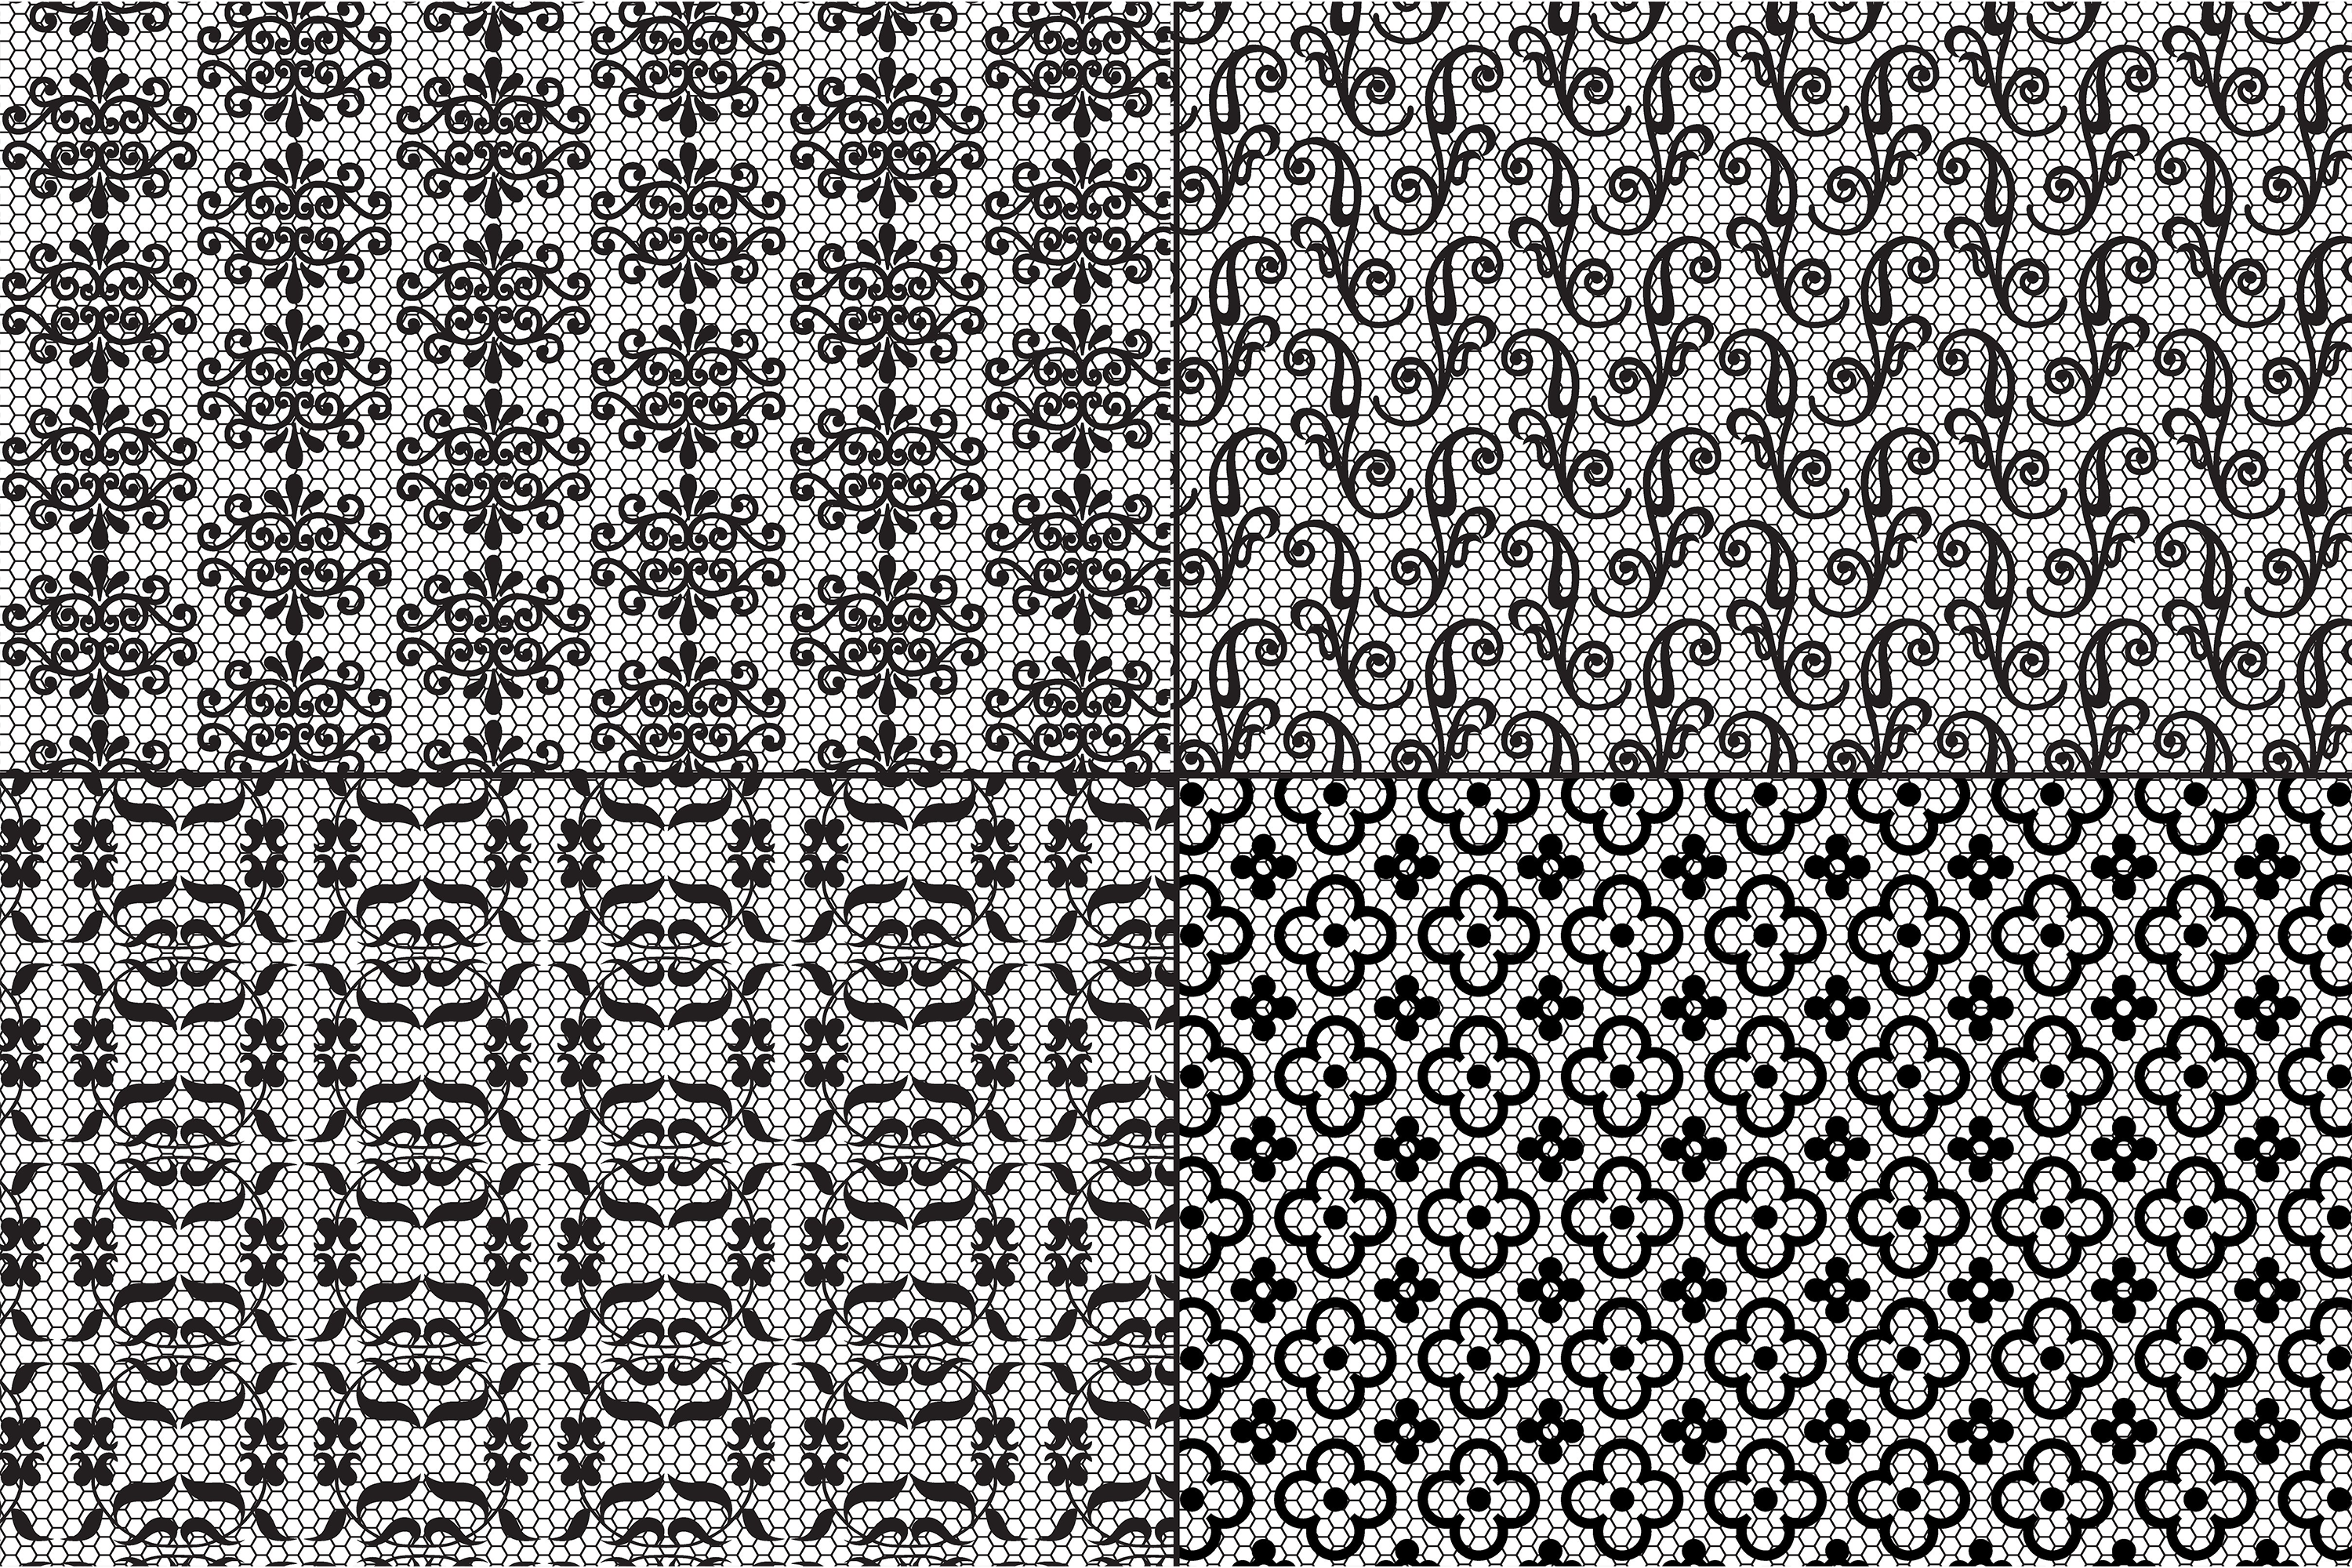 Black Lace Patterns example image 3